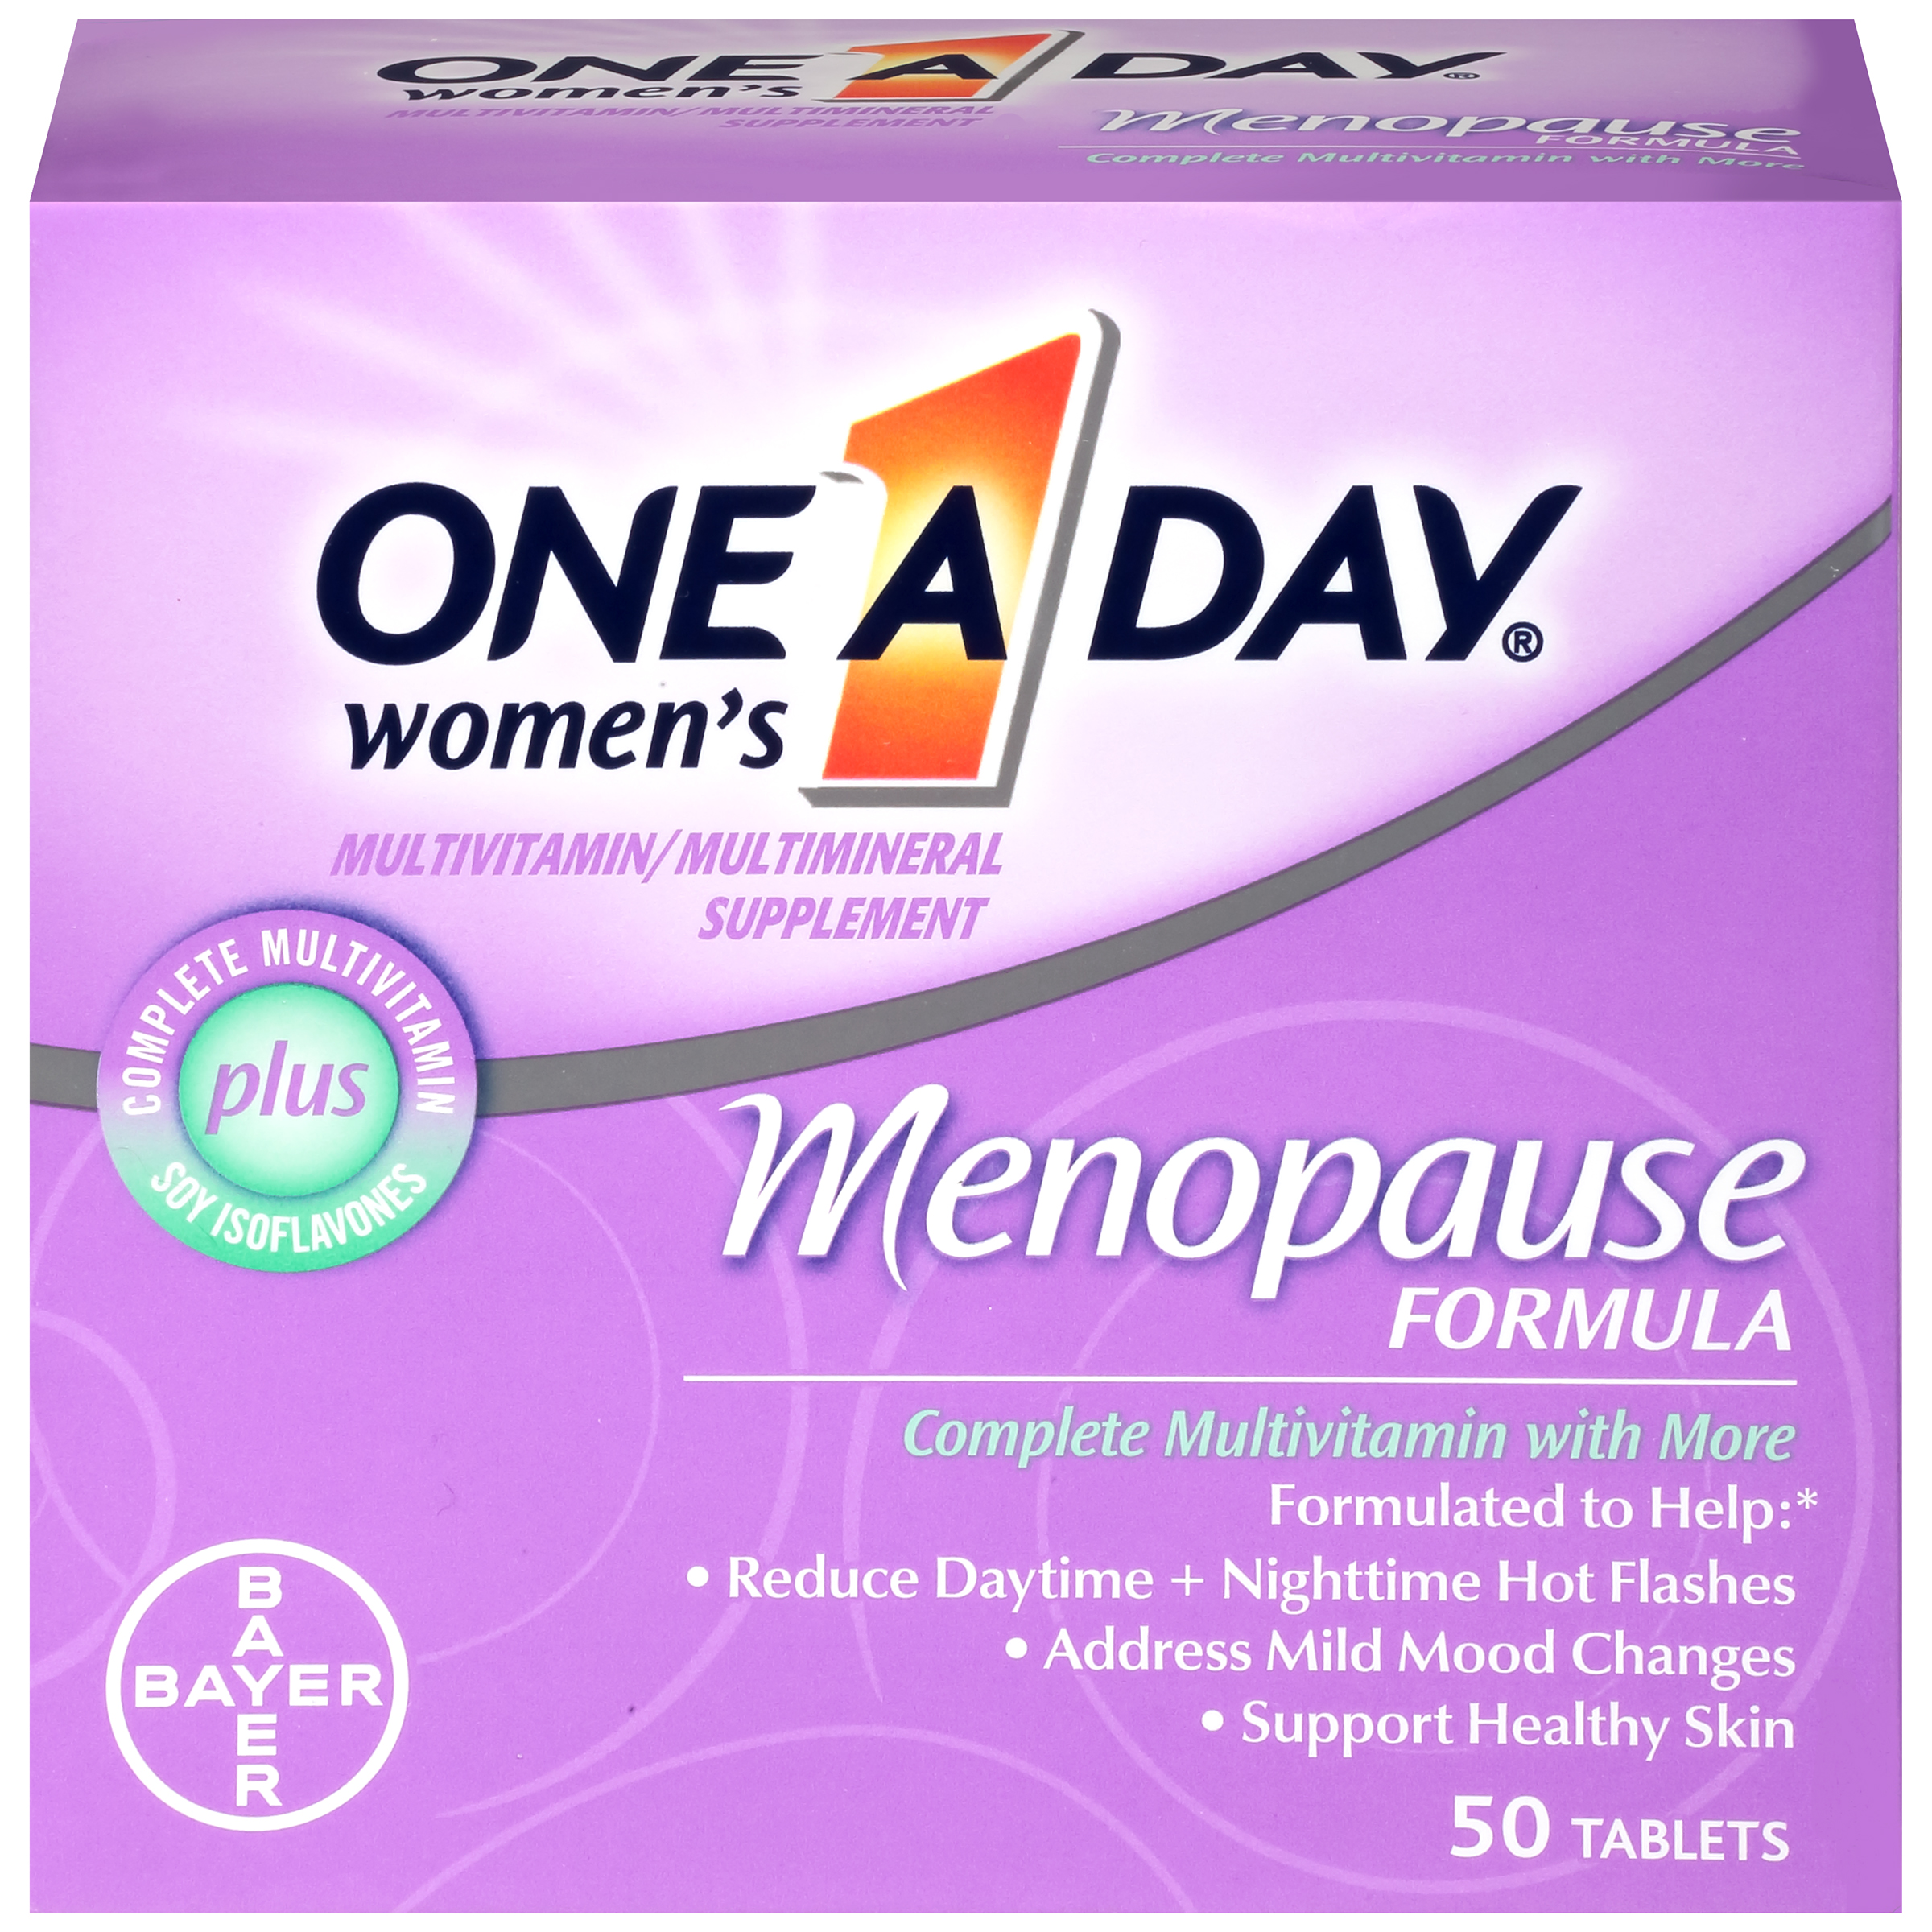 One A Day Women's Menopause Formula Multivitamin, 50 Count